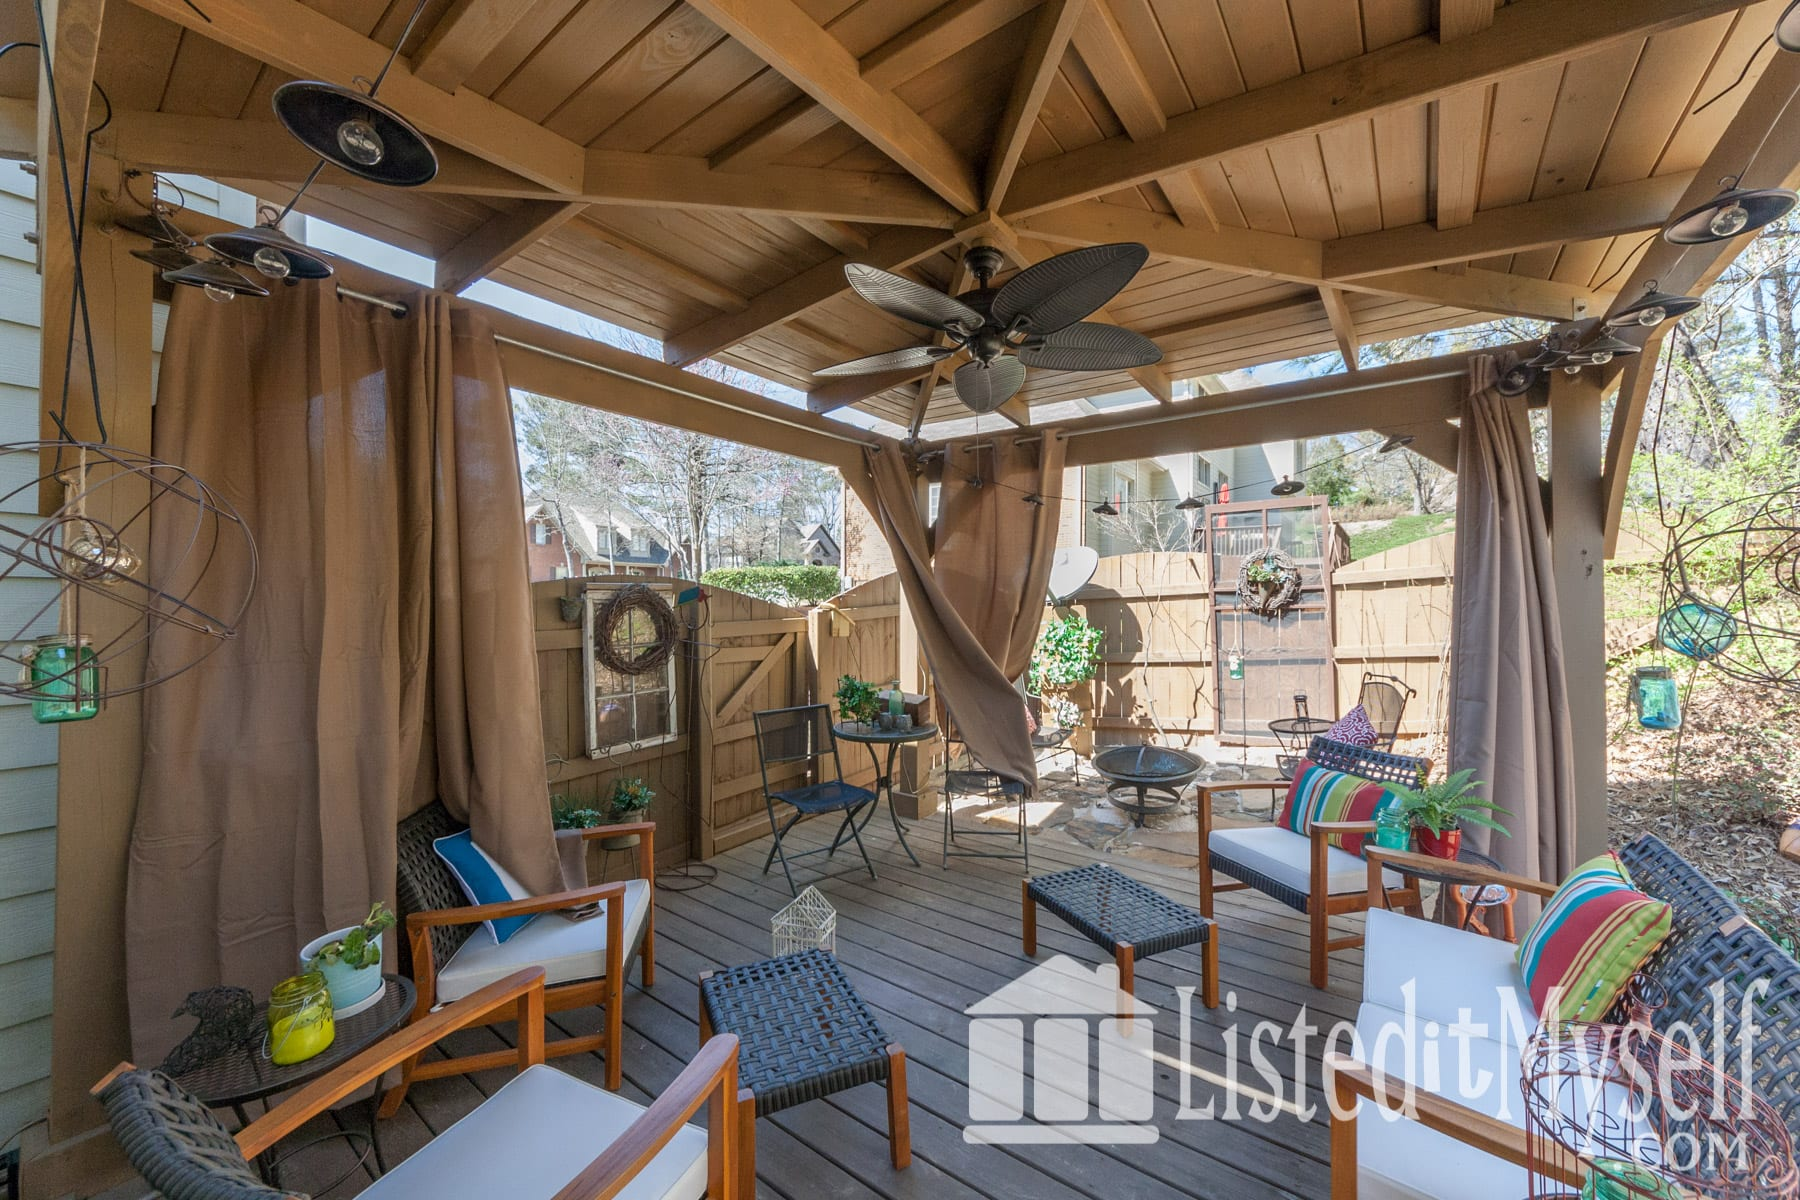 This Can Be A Fresh Picture Of Patio Homes for Sale Hoover Al